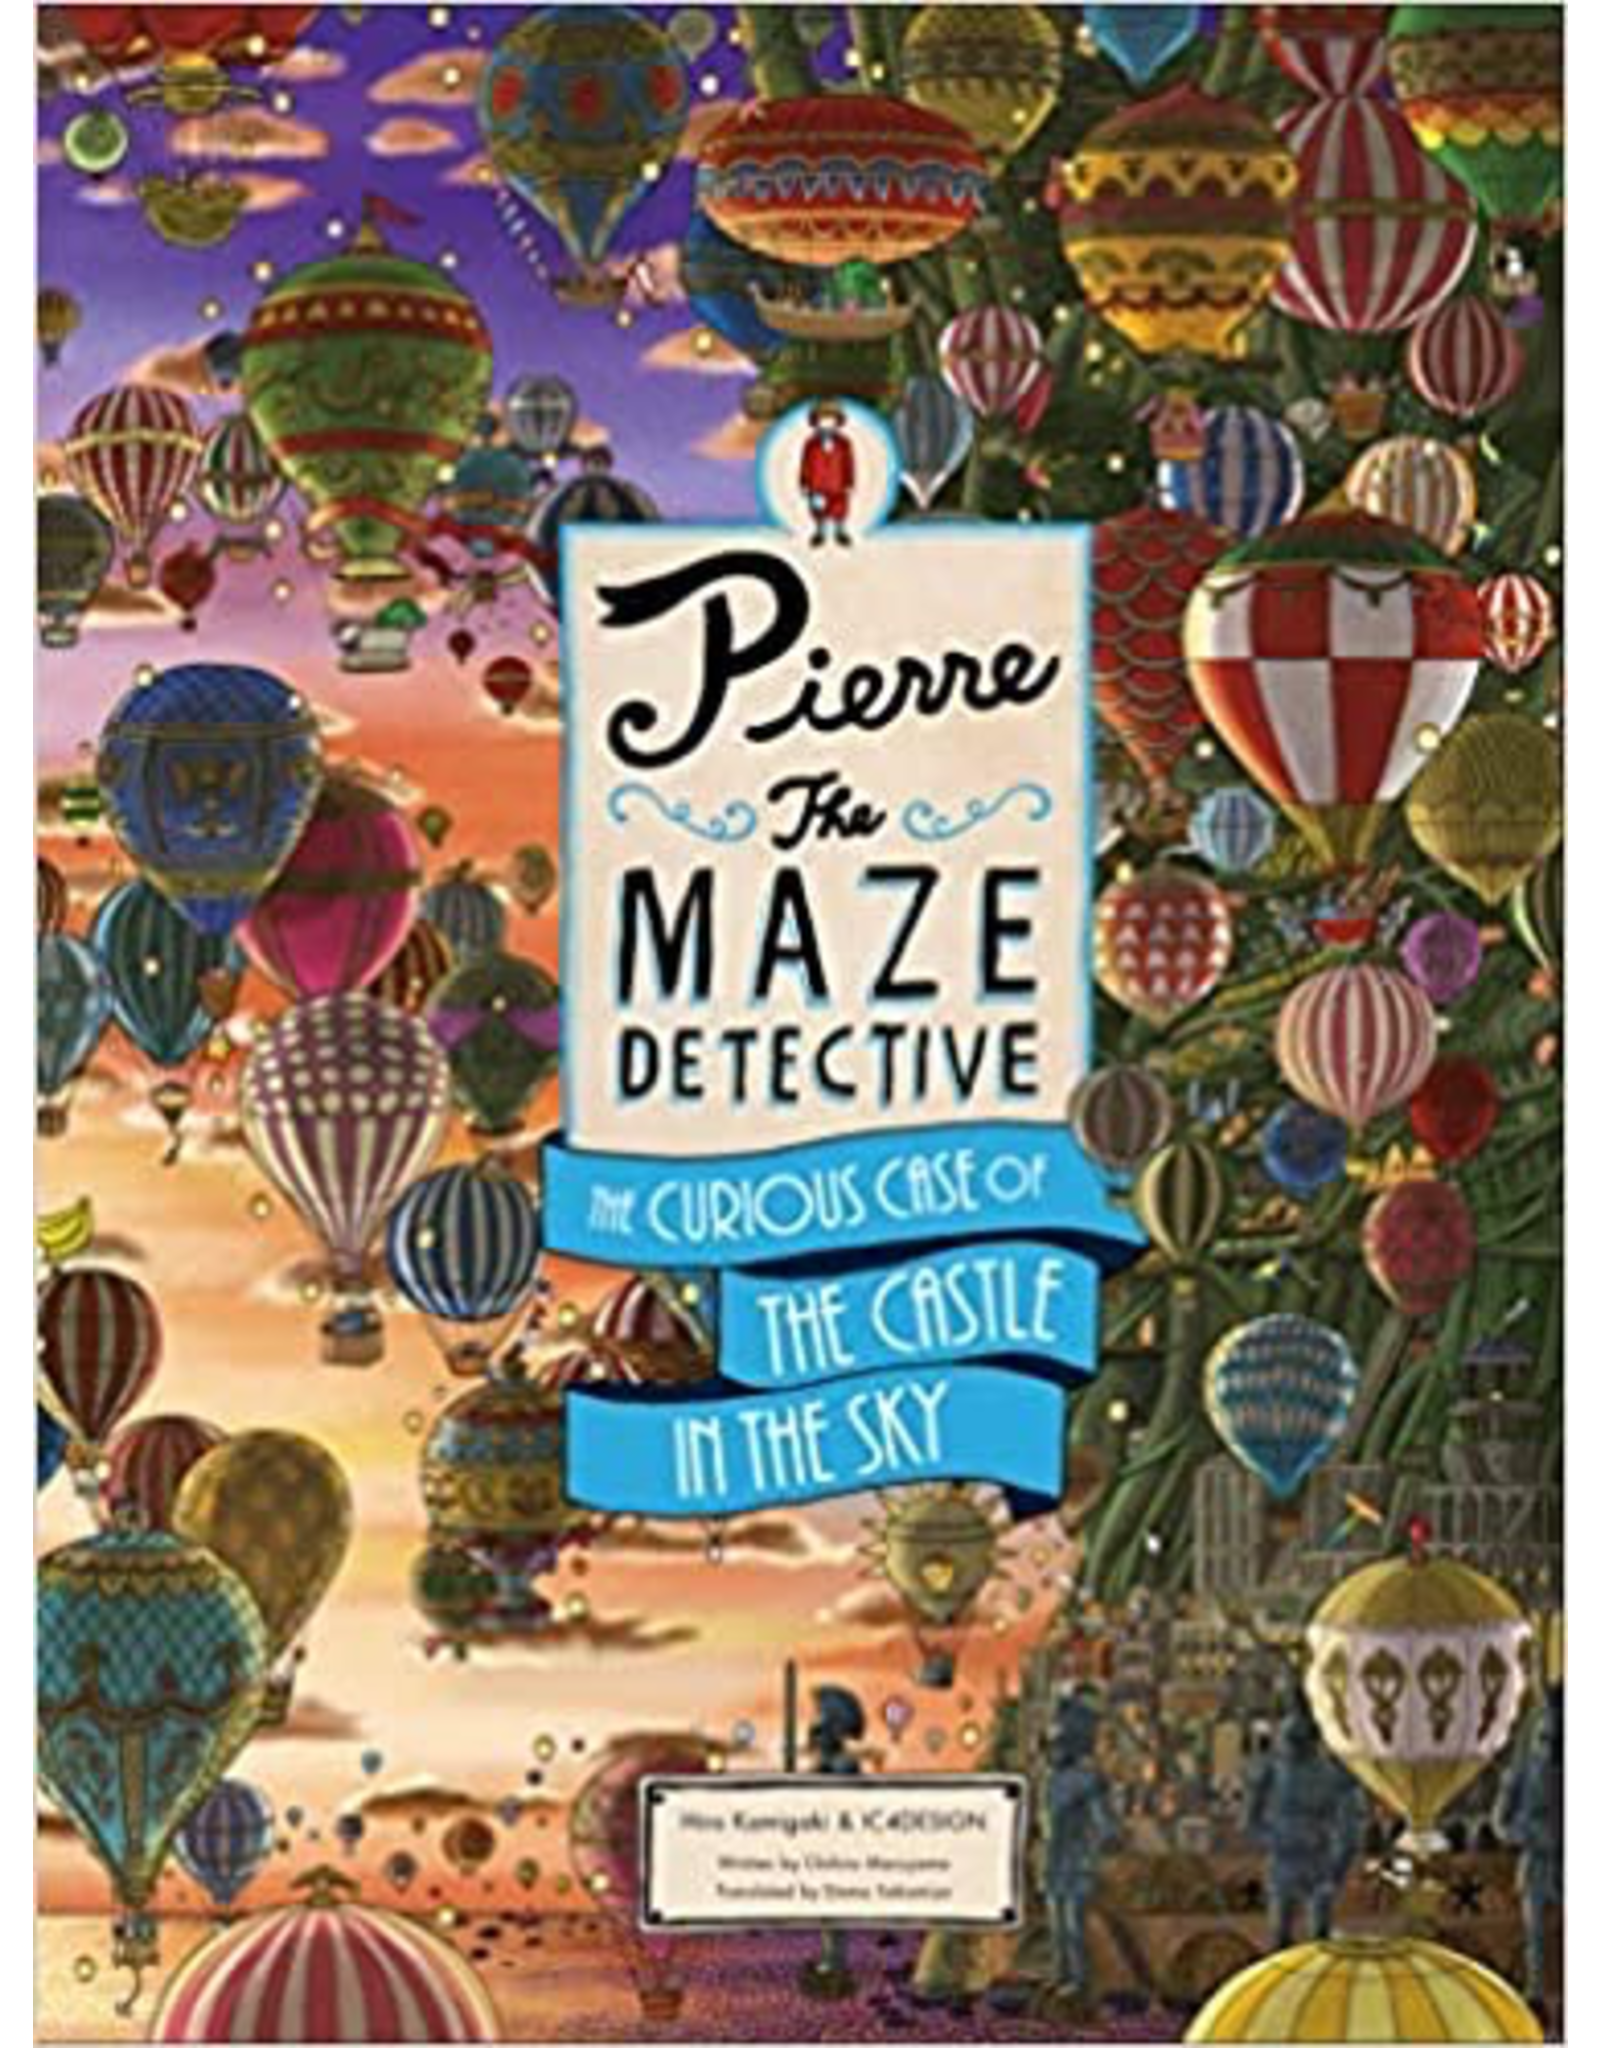 Pierre The Maze Detective: The Curious Case Of The Castle In Thesky